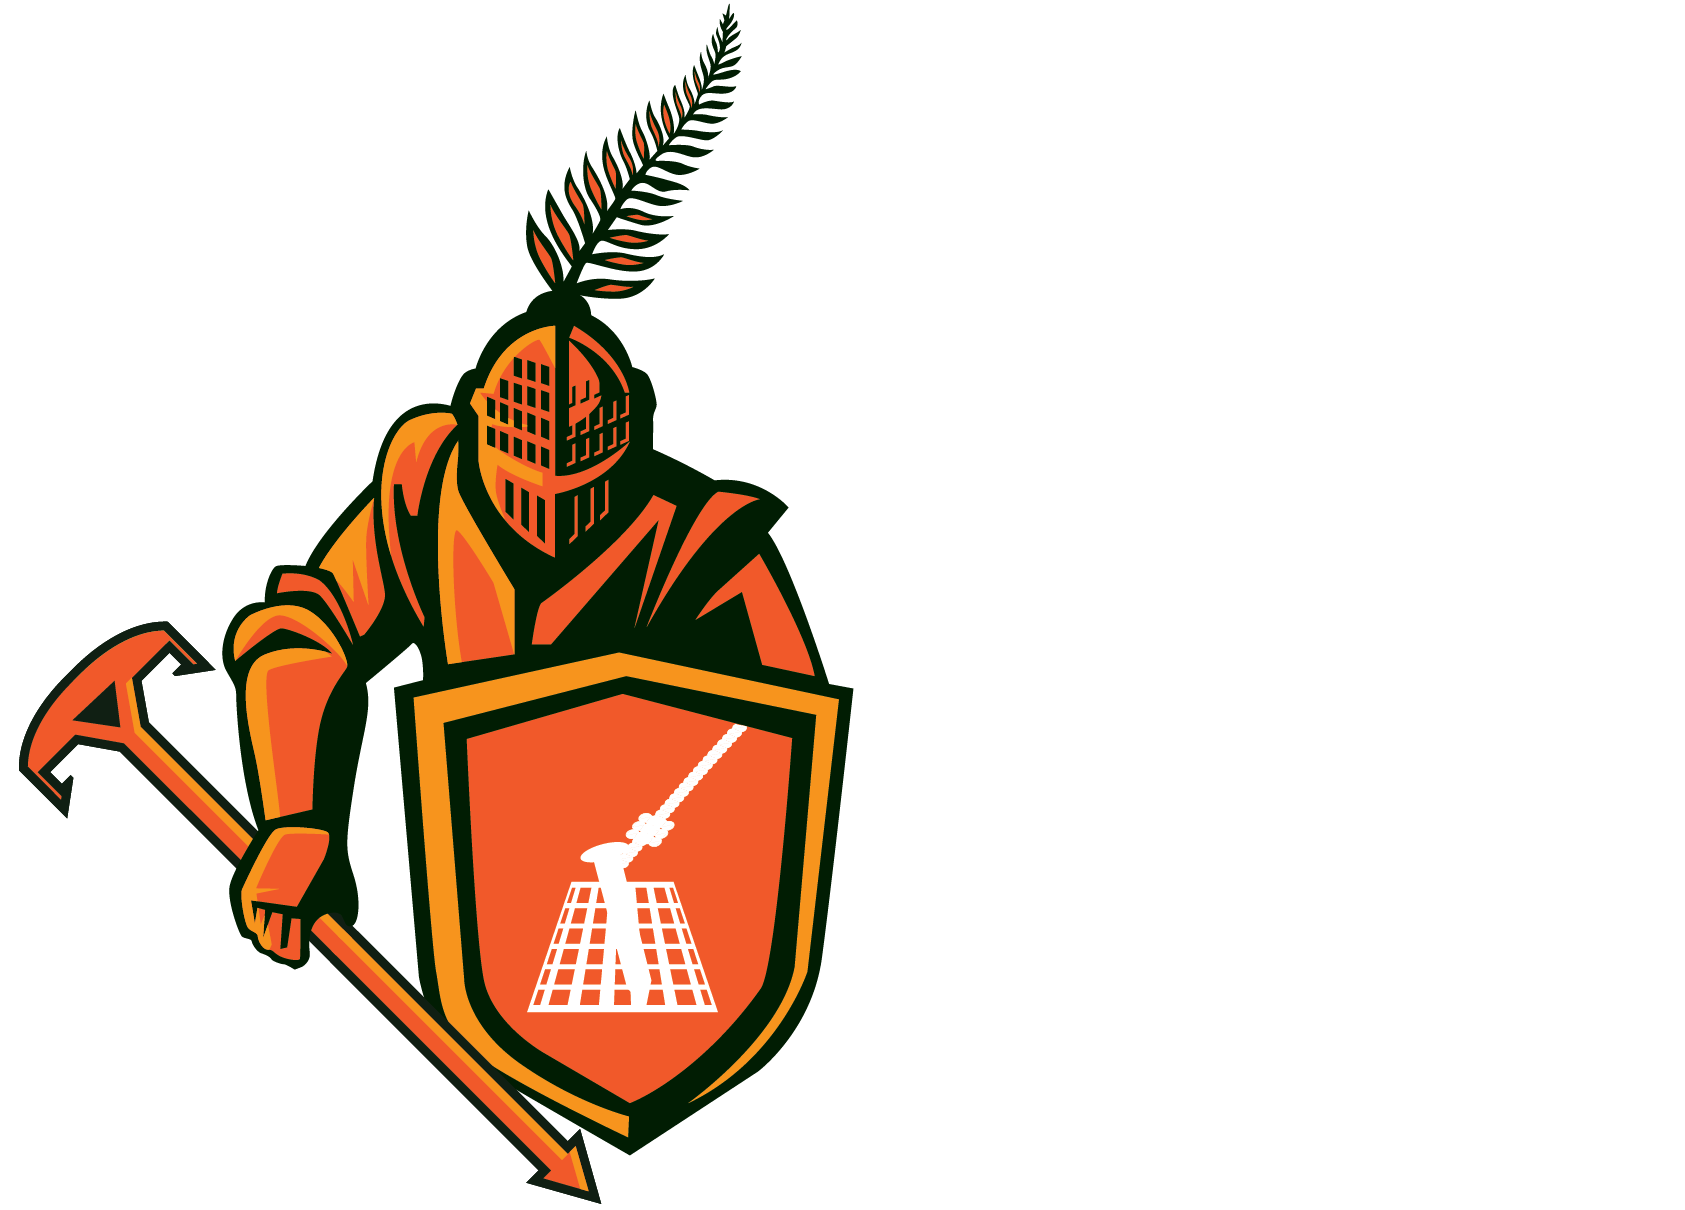 The Stake Knight